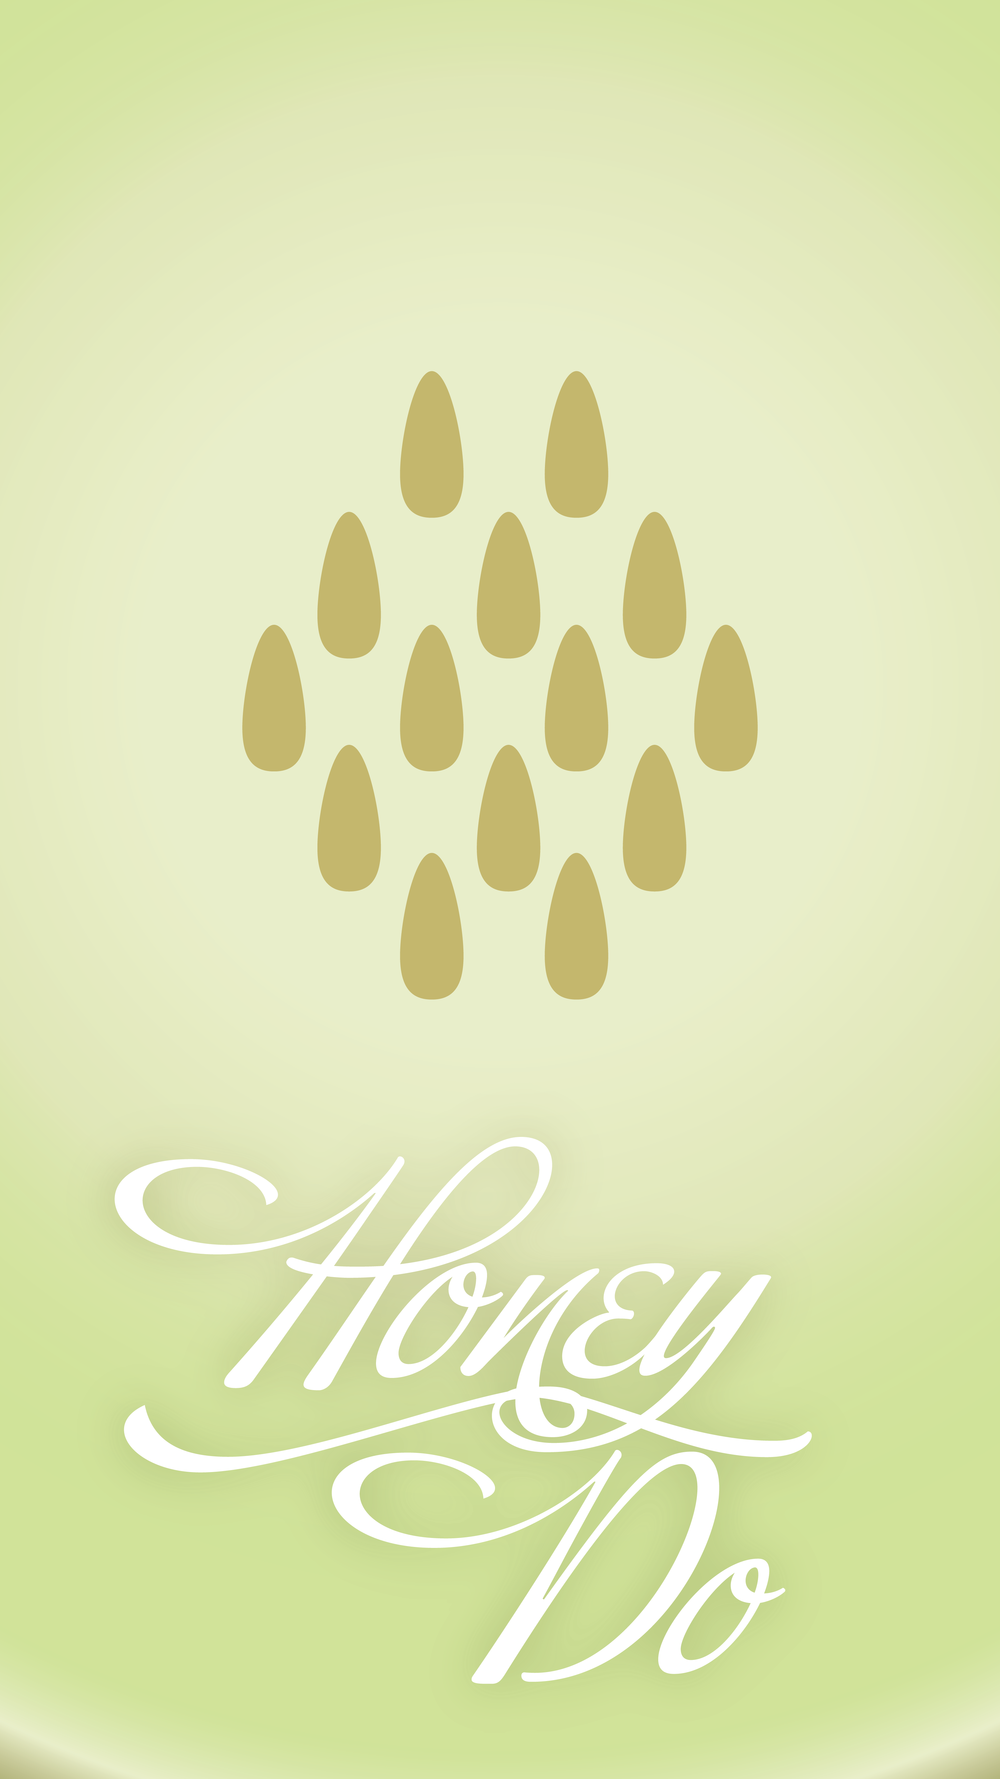 HoneyDo_Outlines-01.png